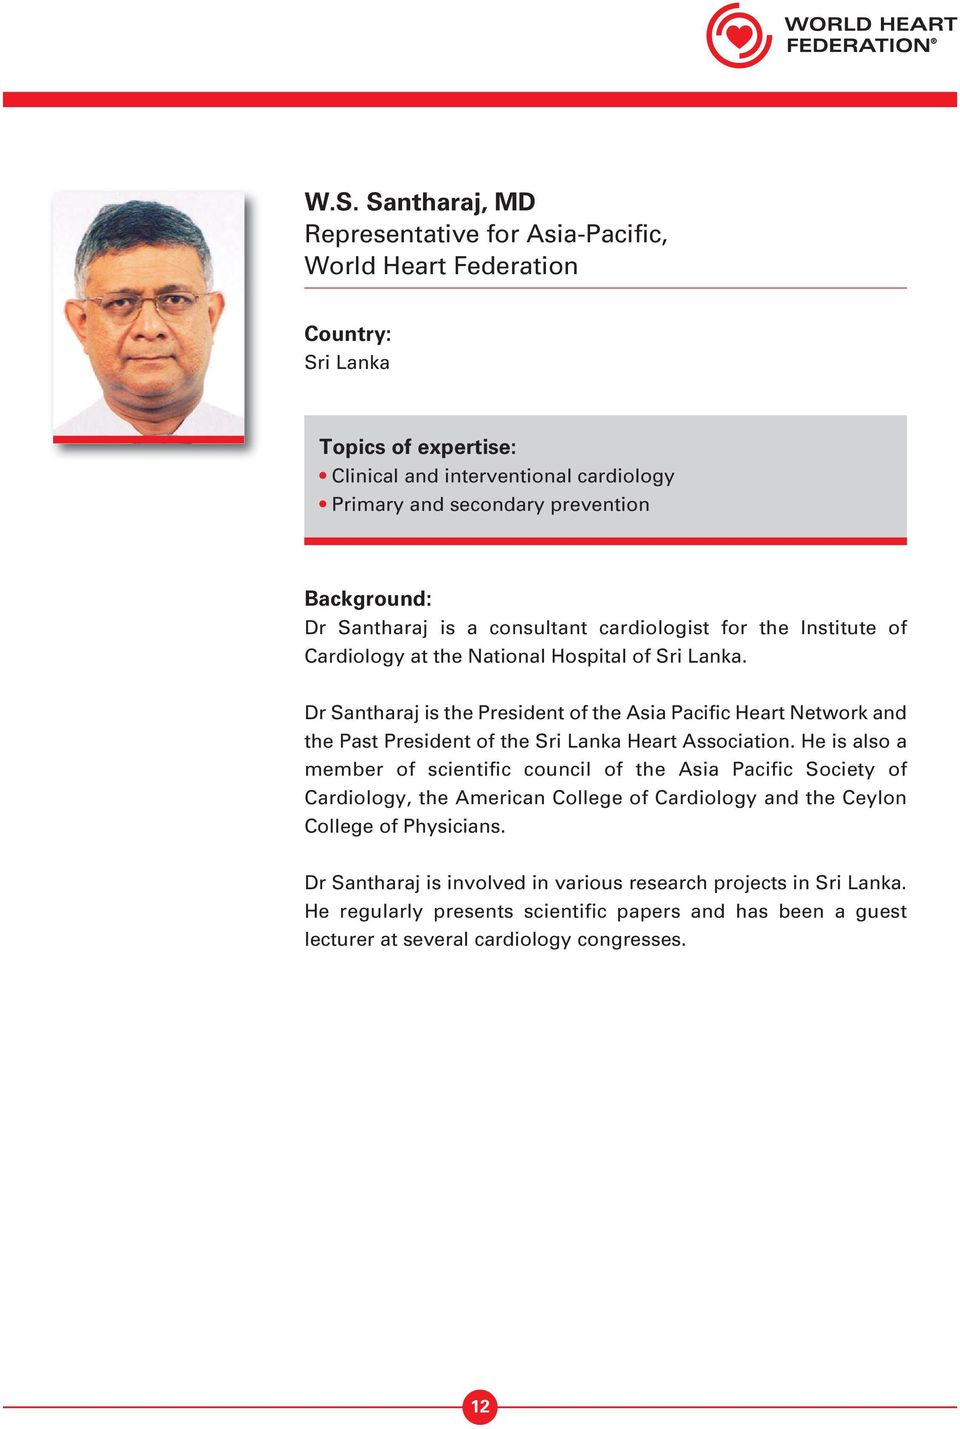 Dr Santharaj is the President of the Asia Pacific Heart Network and the Past President of the Sri Lanka Heart Association.